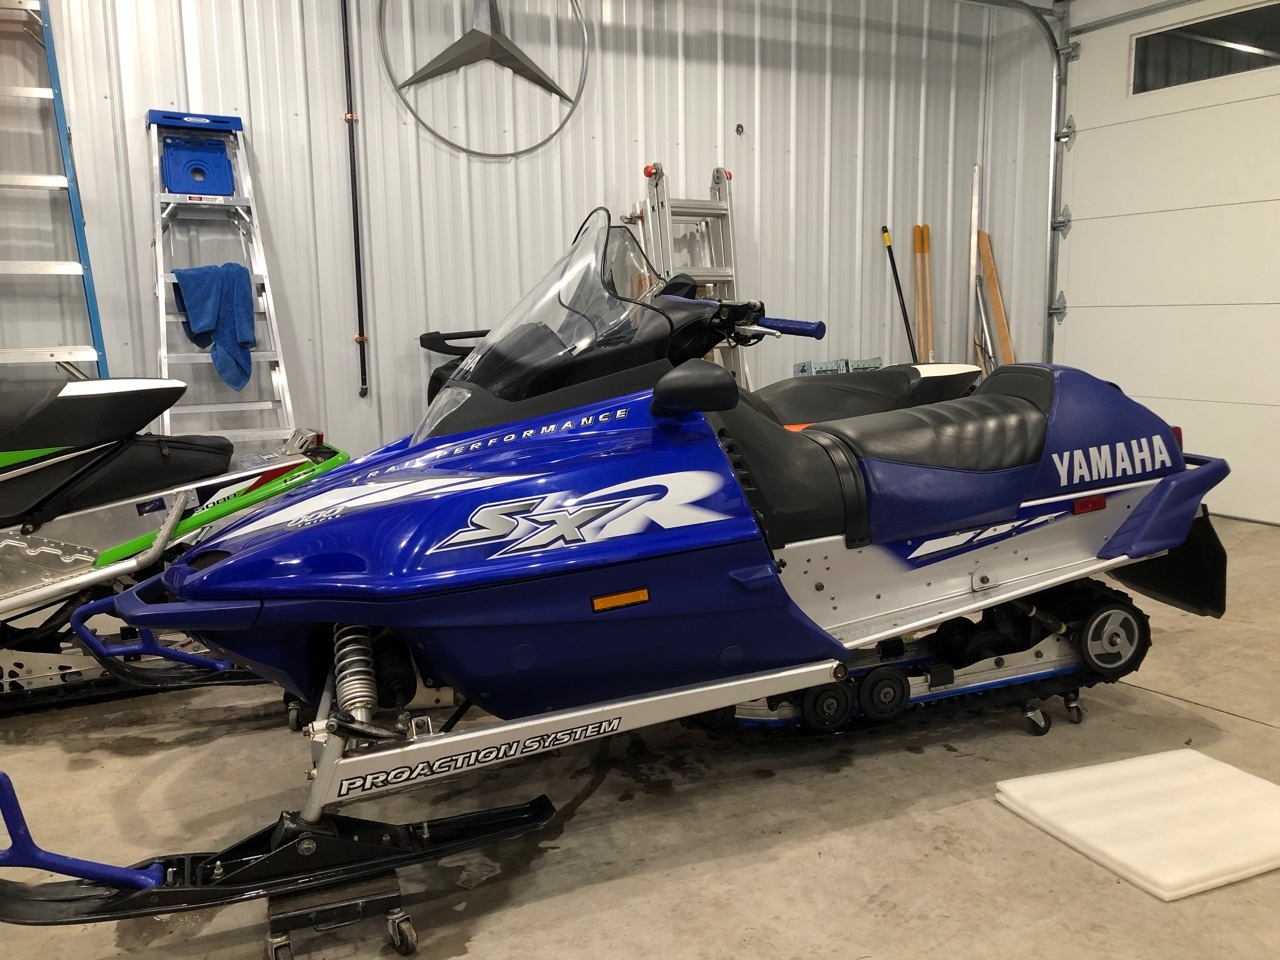 301857s For Sale: 8,892 301857s - Snowmobile Trader